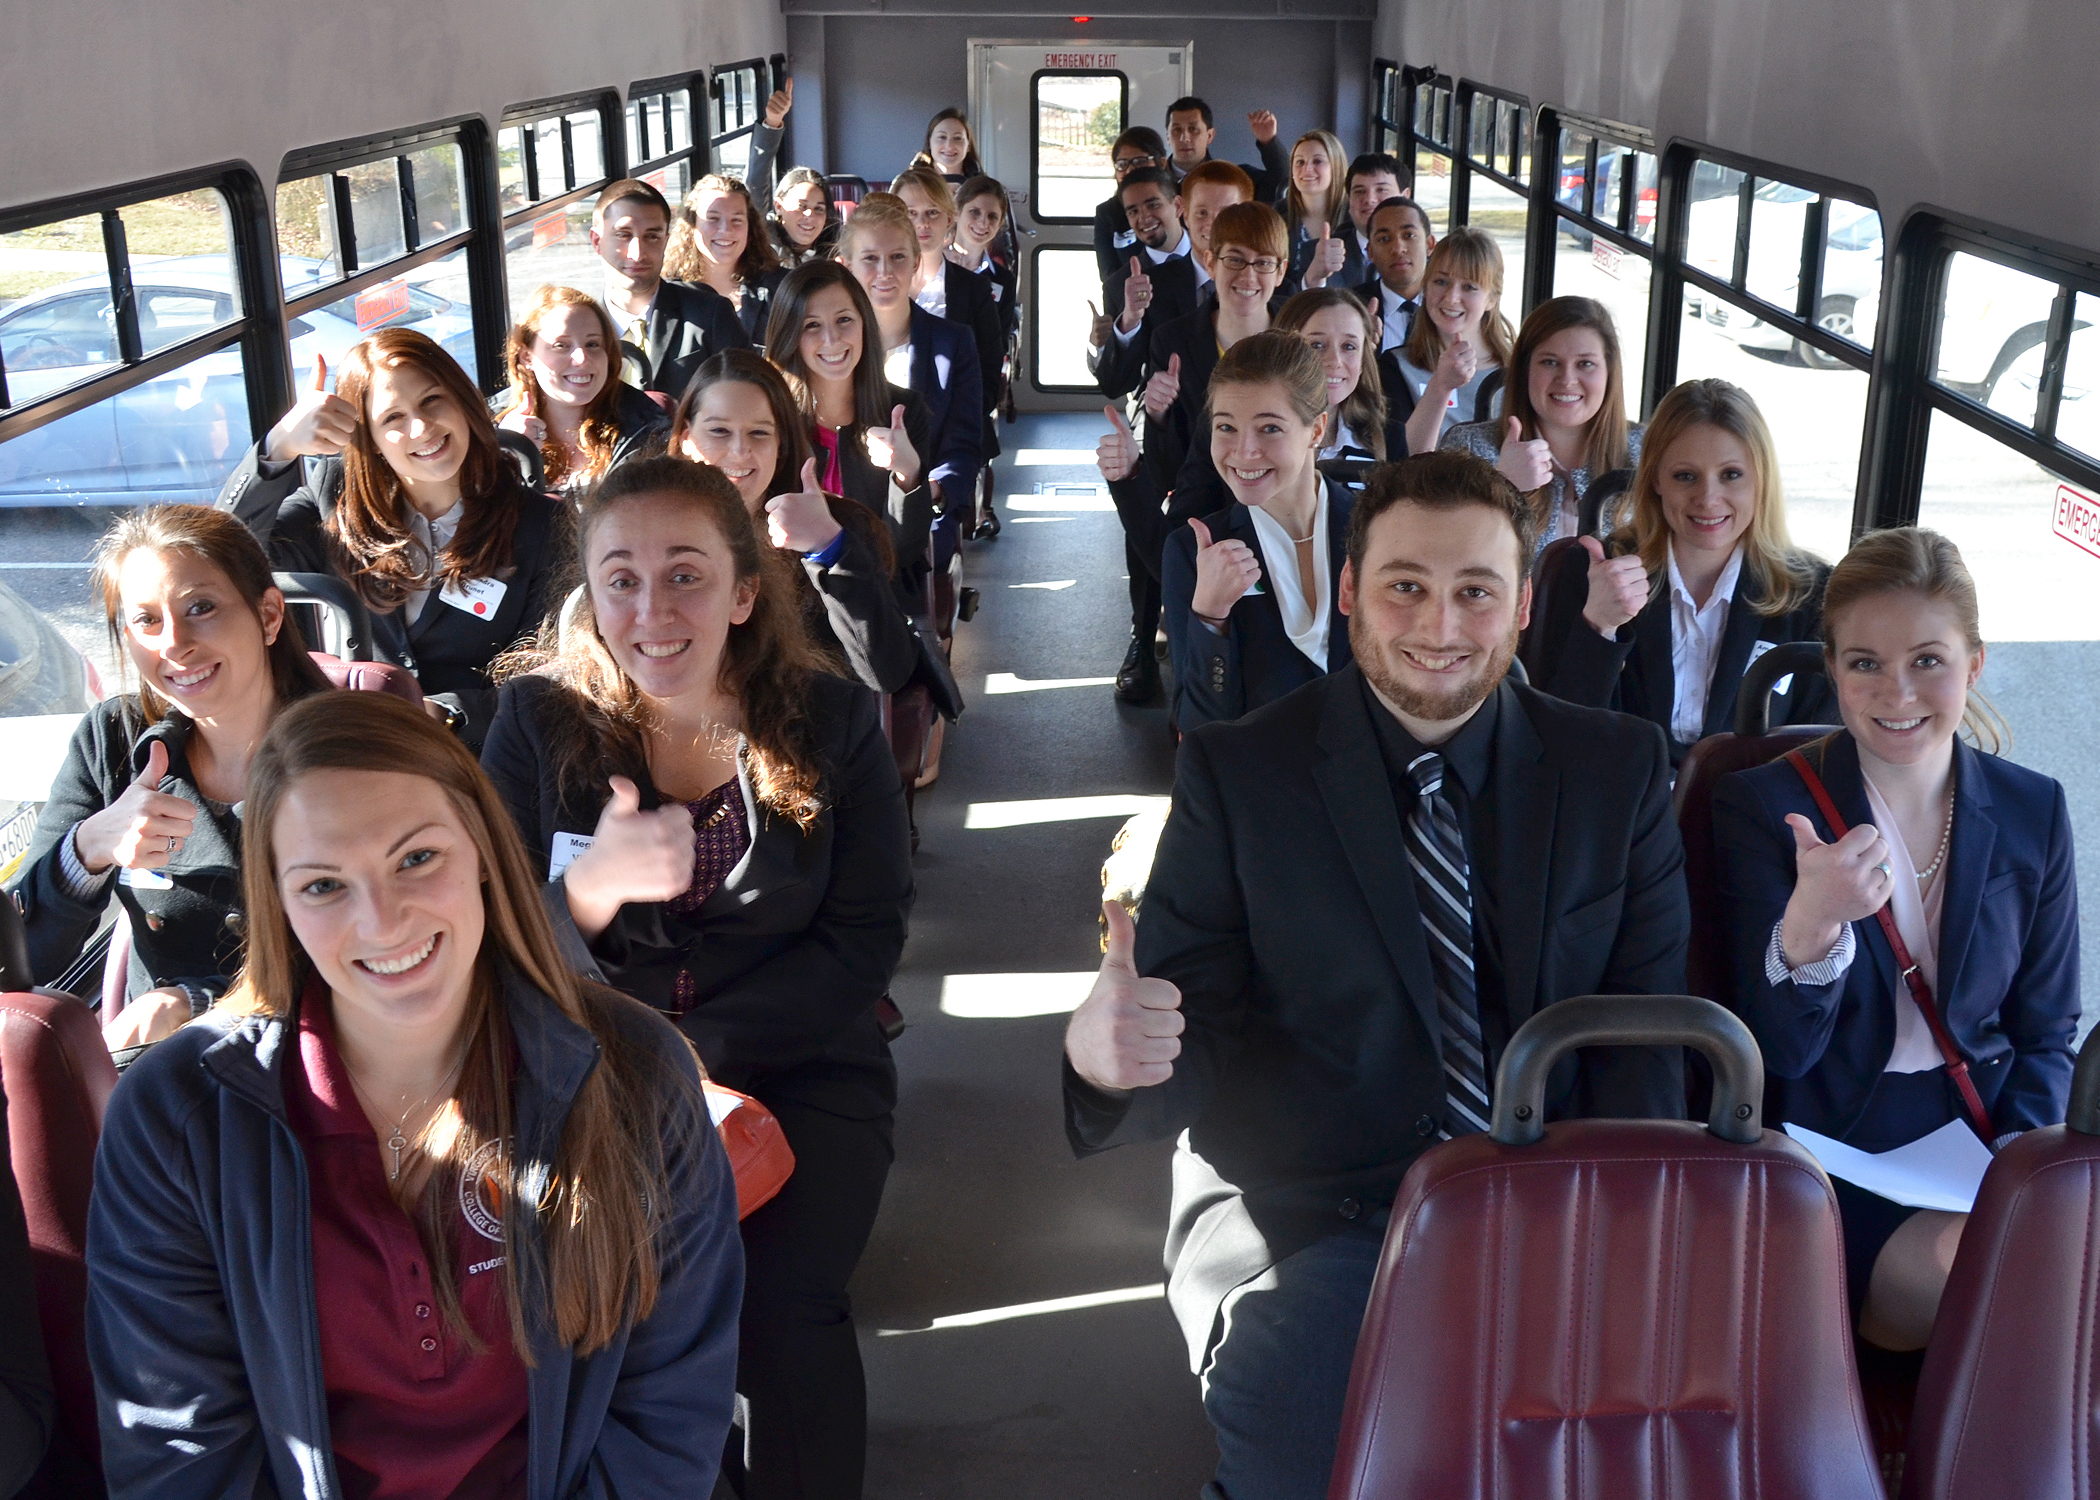 Candidates ride a shuttle bus to the Smith Career Center for interviews. They are accompanied by first-year veterinary student Bethany Cain (front row, left) of Morgantown, West Virginia.